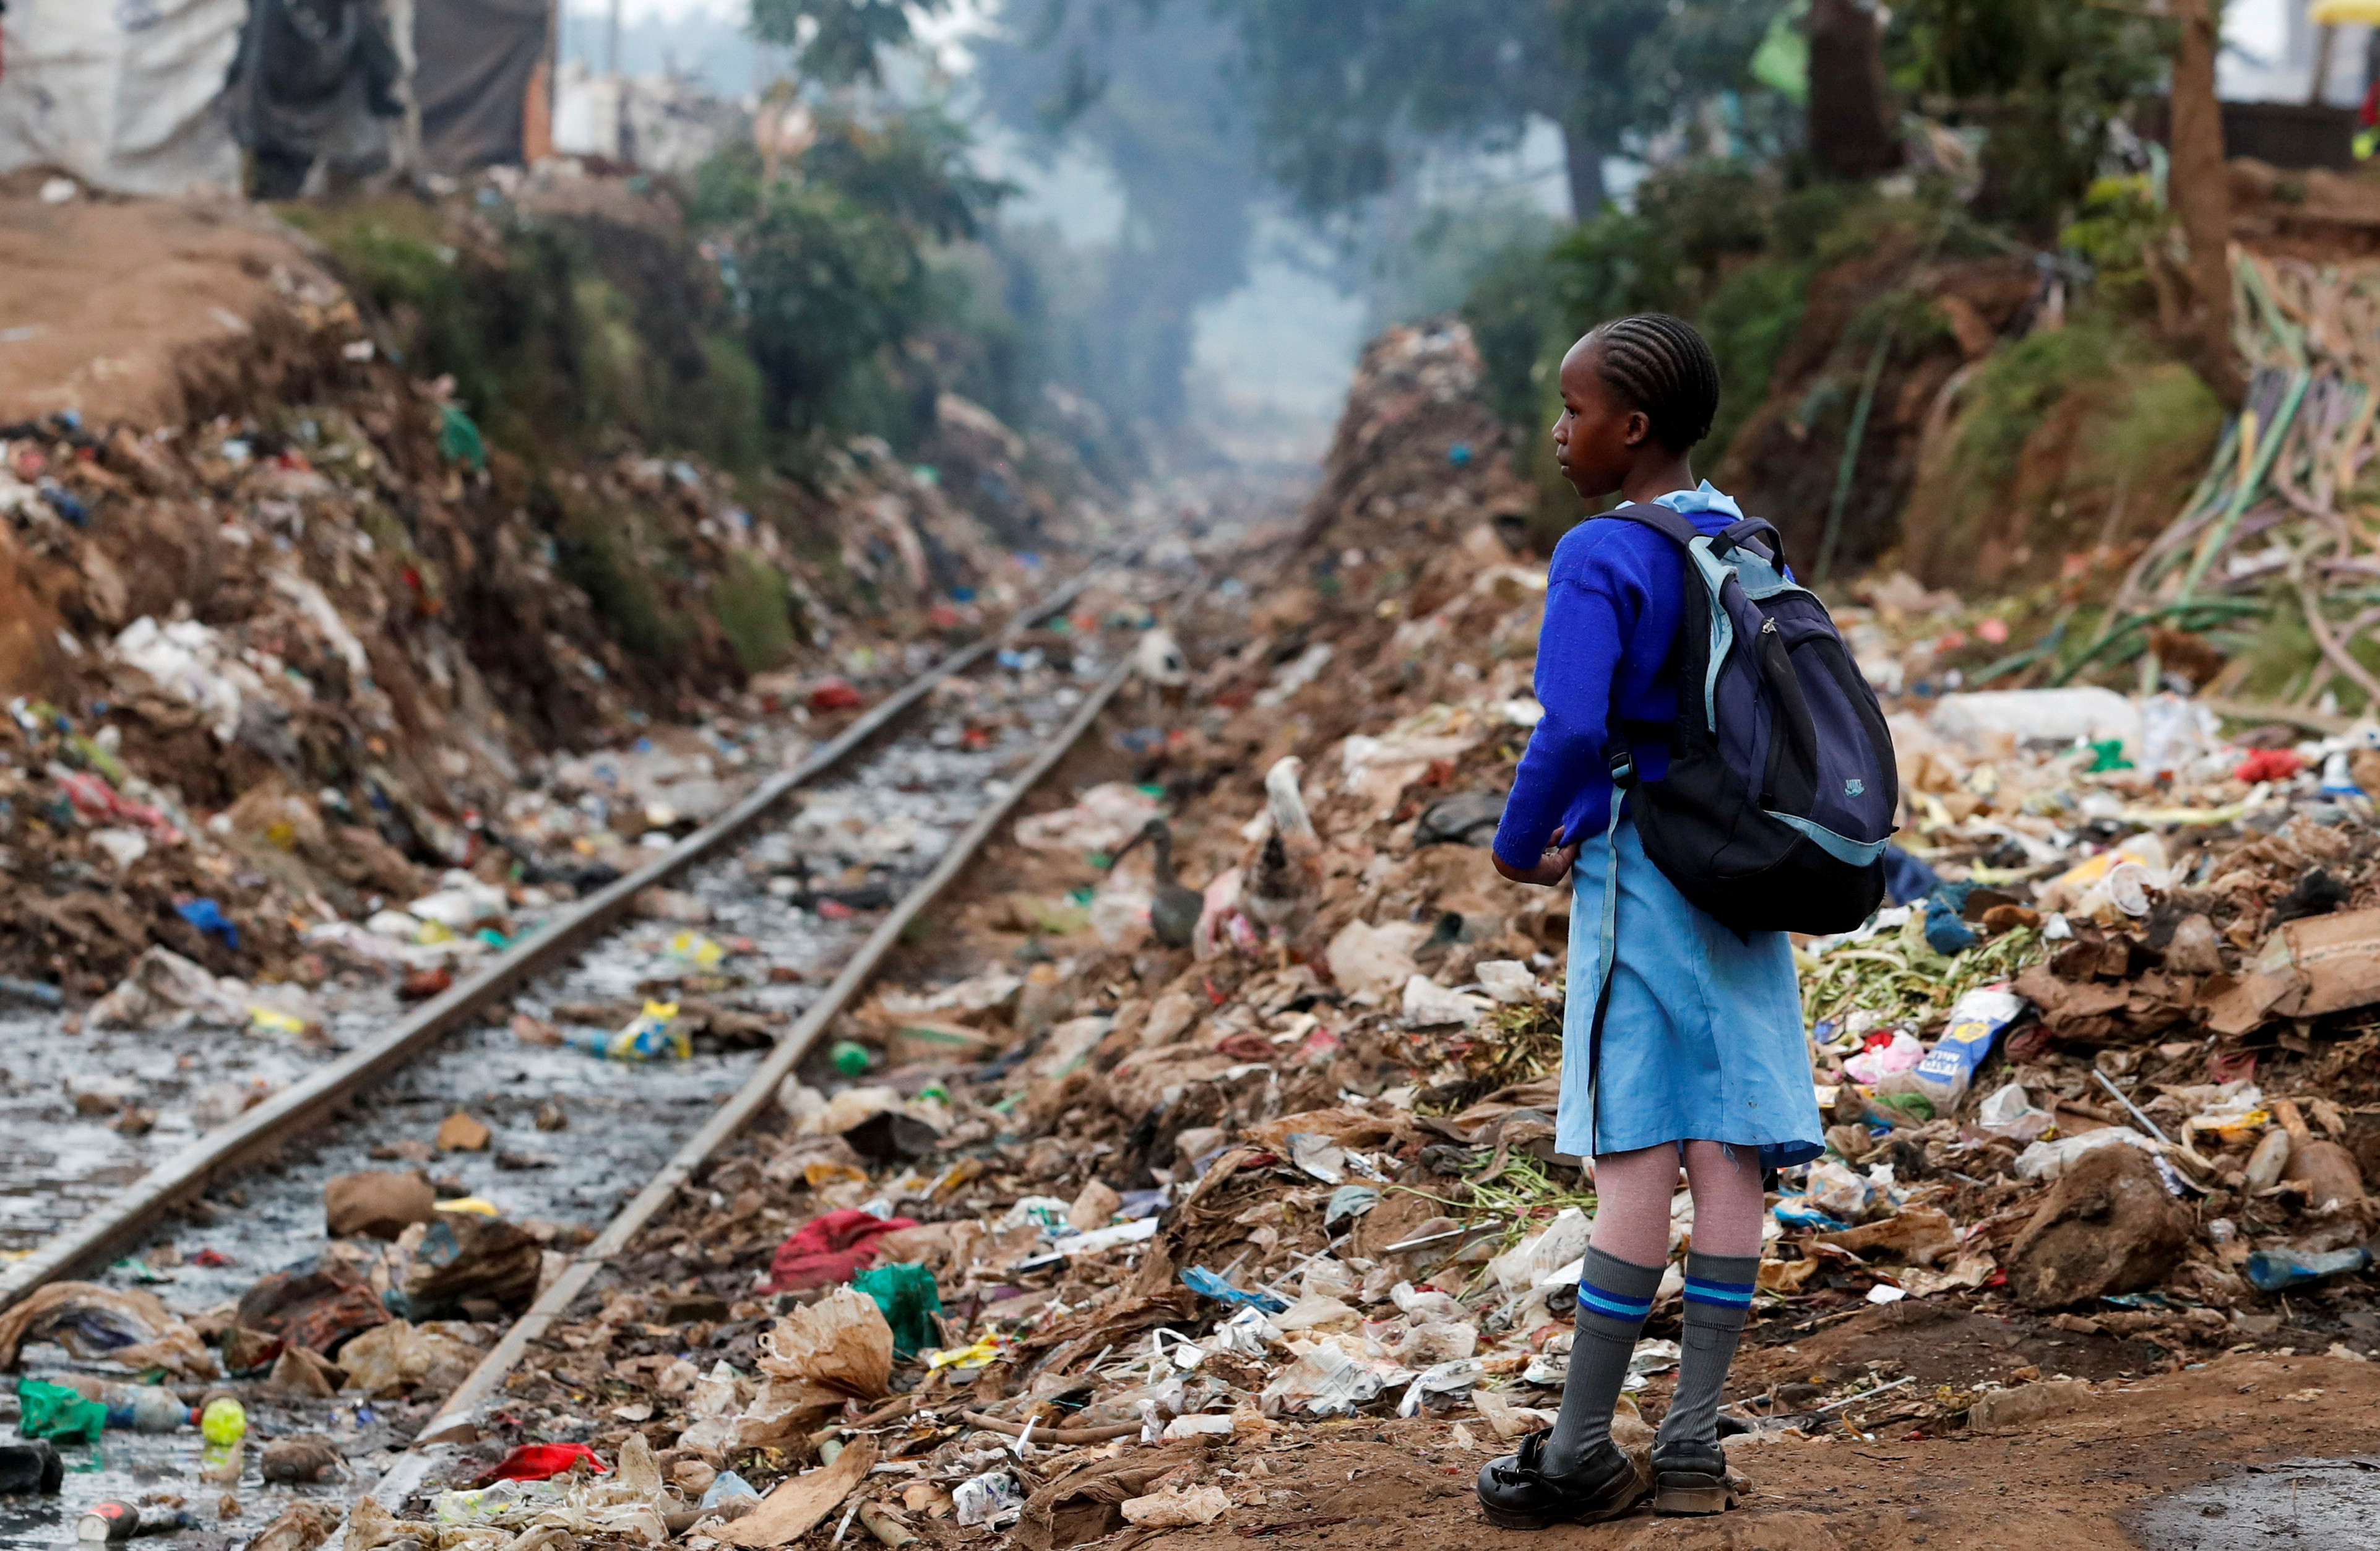 A schoolgirl stands next to the Kenya-Uganda railway line during the partial reopening of schools, after the government scrapped plans to cancel the academic year due to the coronavirus disease (COVID-19) pandemic, in Kibera slums of Nairobi, Kenya October 12, 2020. REUTERS/Thomas Mukoya     TPX IMAGES OF THE DAY - RC2WGJ9G86NR